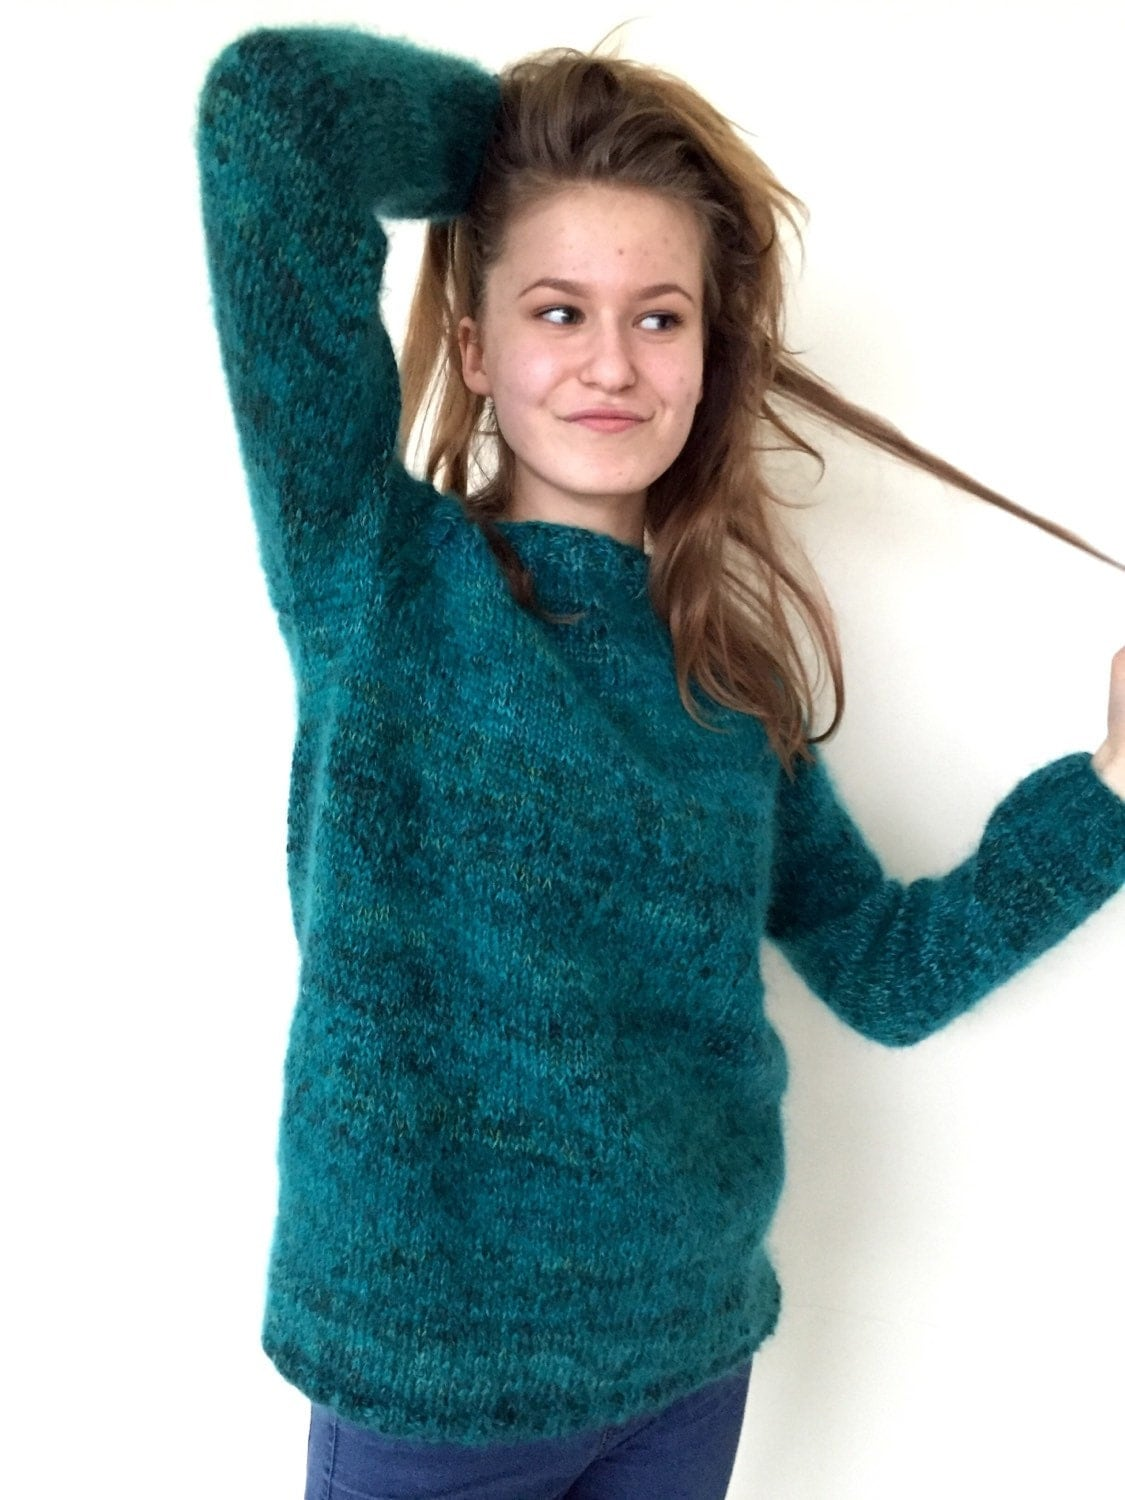 Great Sweater Cute Guy Too: Mohair Sweater Emerald Green Sweater Women's Sweater Comfy